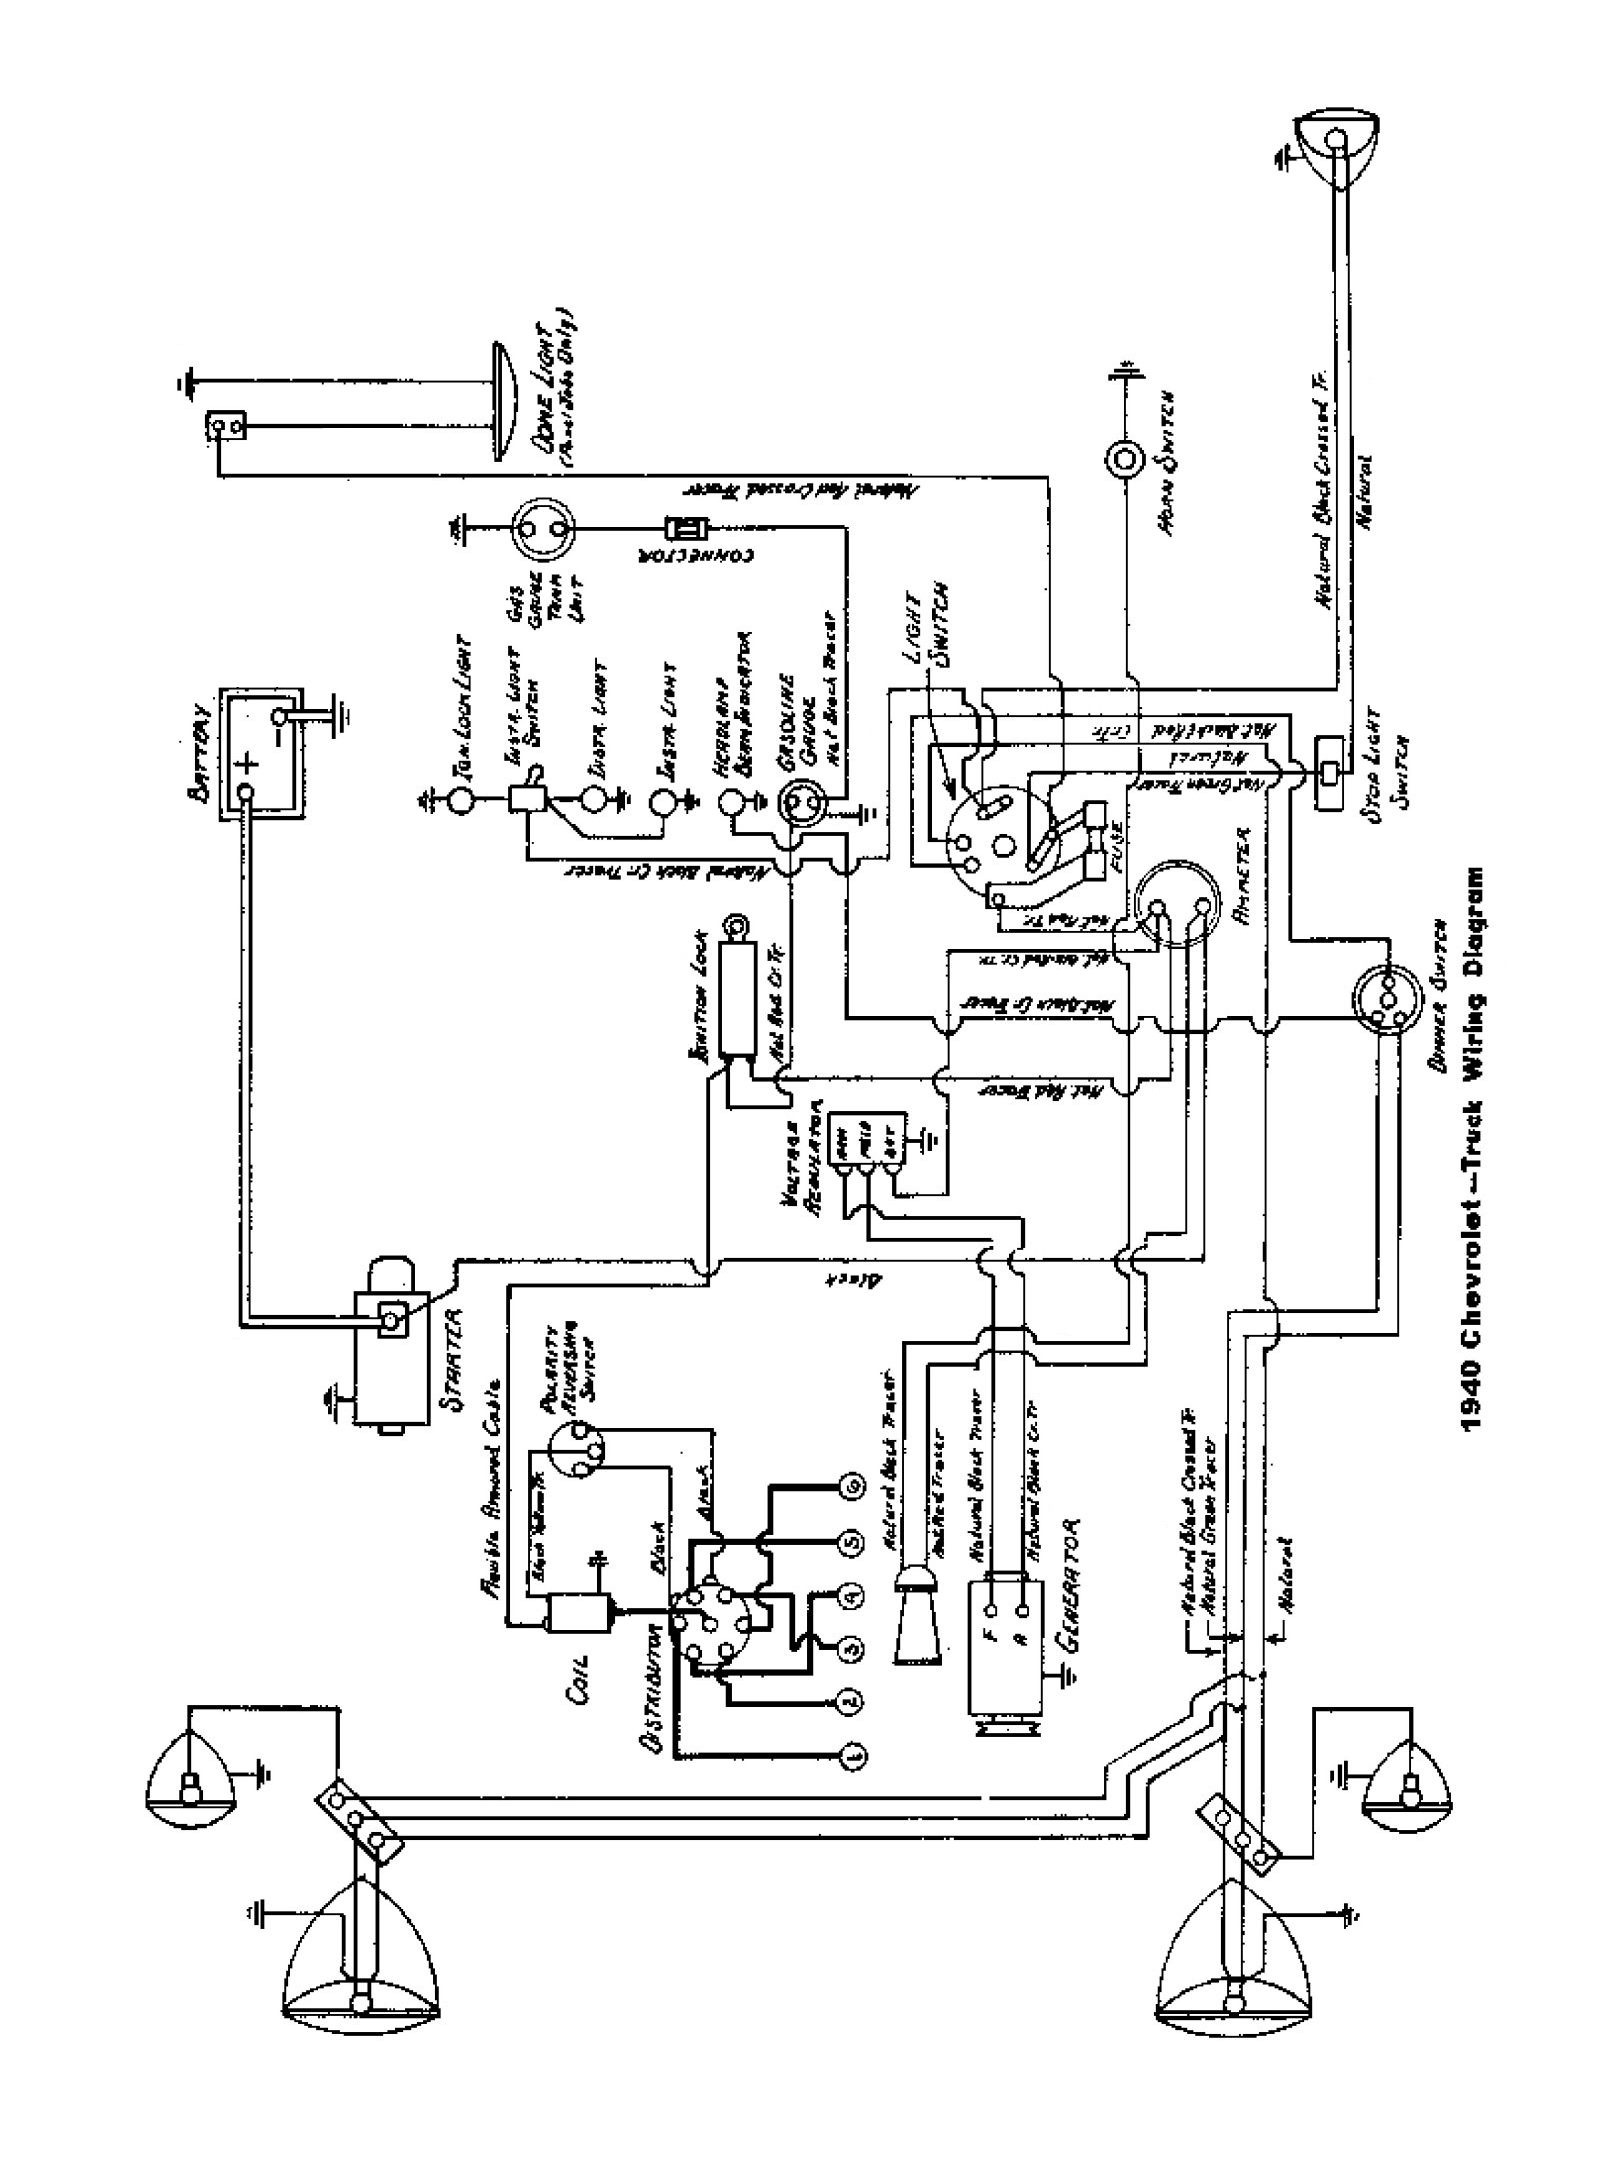 Wiring Diagram For 1950 Gmc - Wiring Diagram Data Oreo on chevy fuse box diagram, chevy headlight sensor, chevy radiator diagram, 2004 chevy trailblazer transmission diagram, 4l60e wiring harness diagram, dodge wiring harness diagram, chevy headlight adjustment, chevy silverado fuel system diagram, 2005 chevy impala ignition switch diagram, 1963 c10 dash diagram, relay wiring diagram, chevy alternator diagram, headlight dimmer switch diagram, 2000 chevrolet truck wiring diagram, chevy headlight switch, chevy light switch diagram, 97 chevy truck tail light diagram, chevy drl relay, headlight wire harness diagram, headlight circuit diagram,